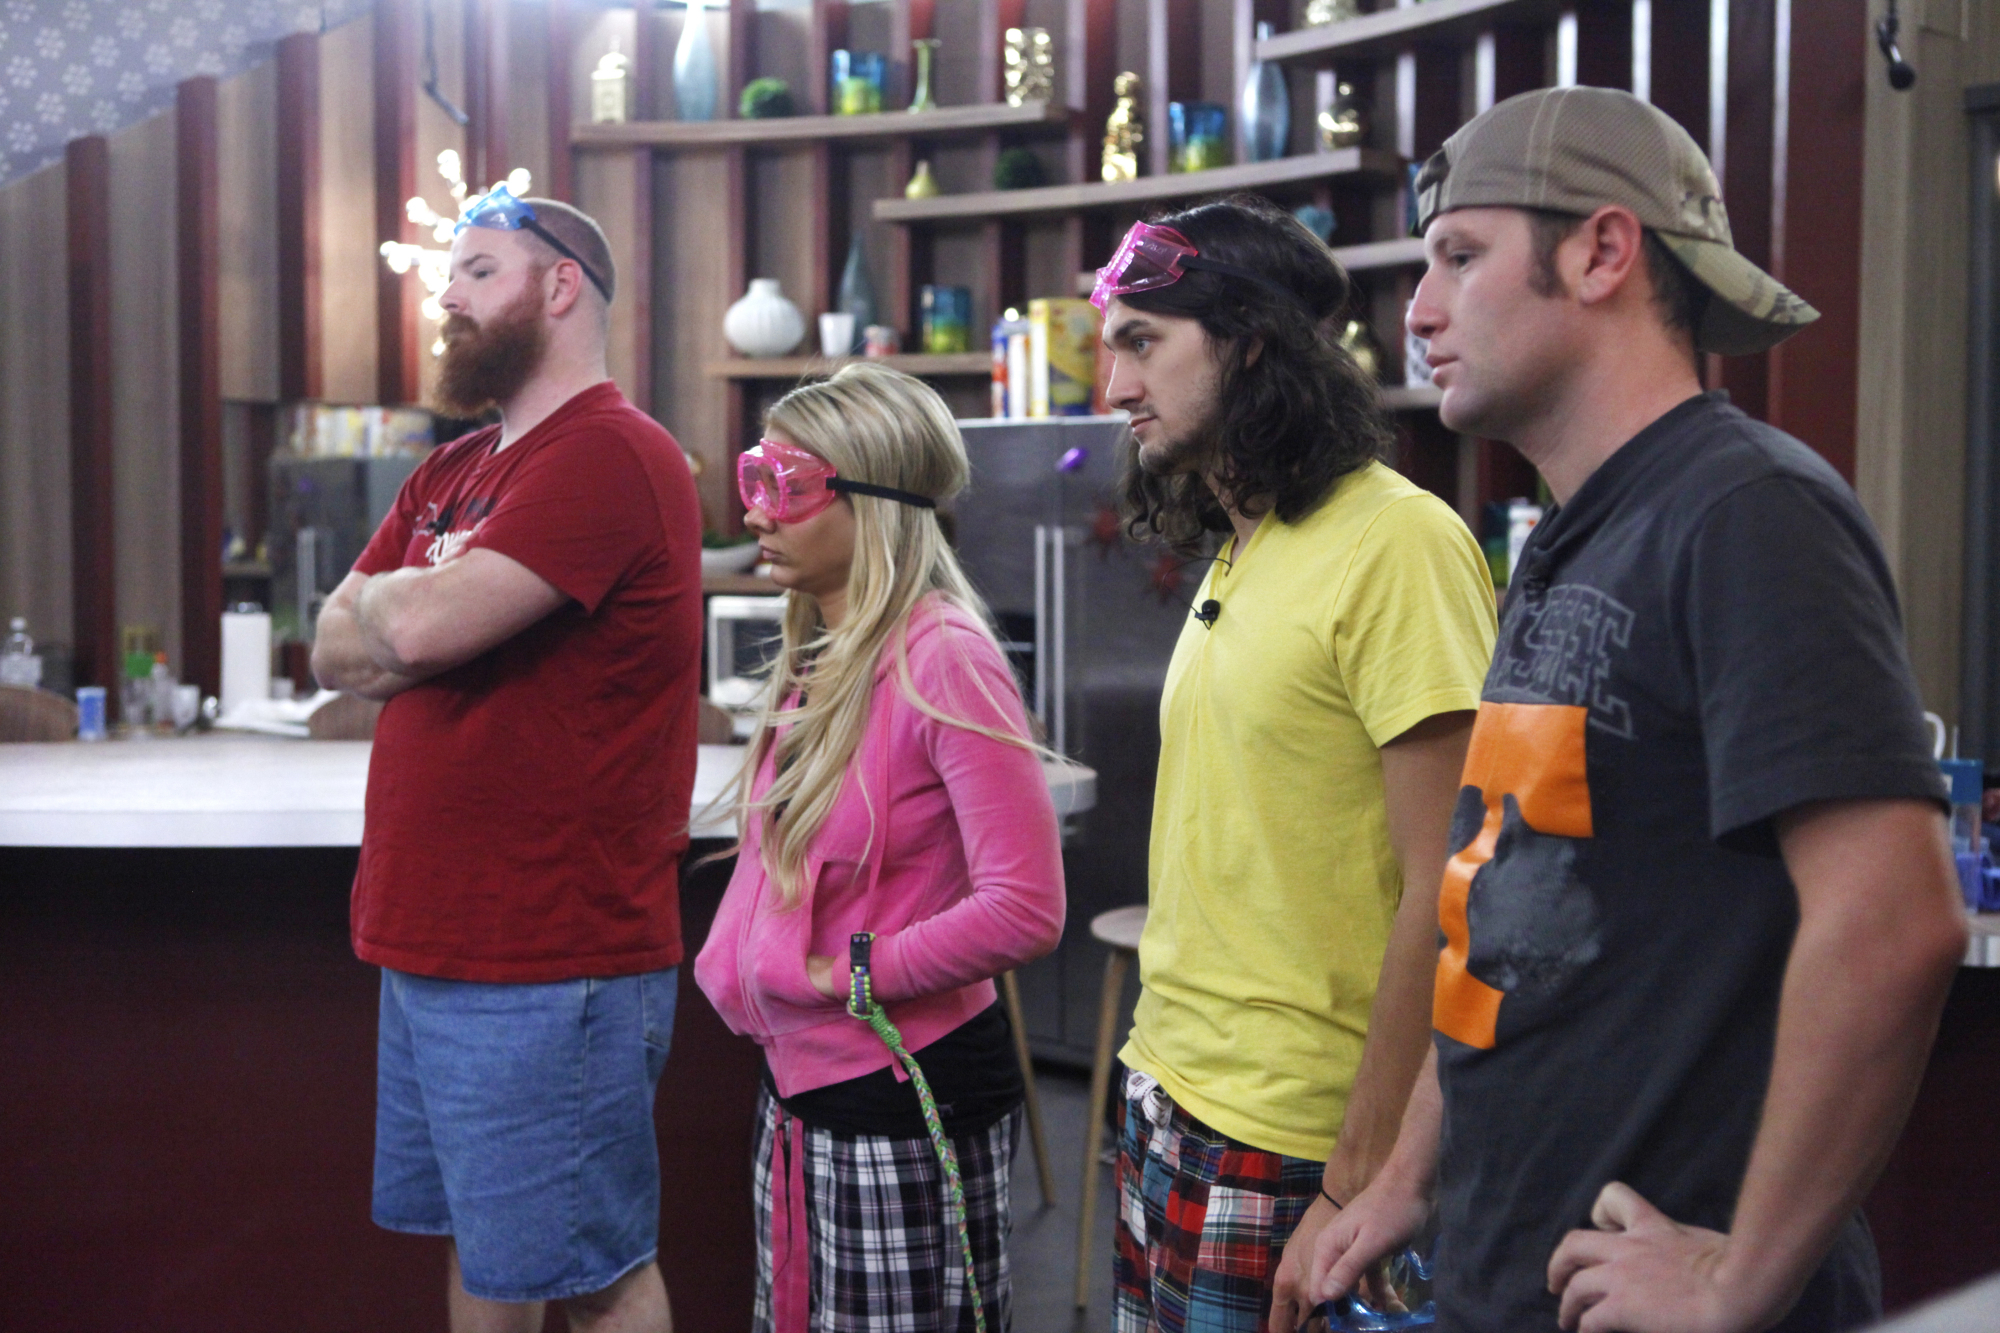 Spencer, GinaMarie, McCrae and Judd